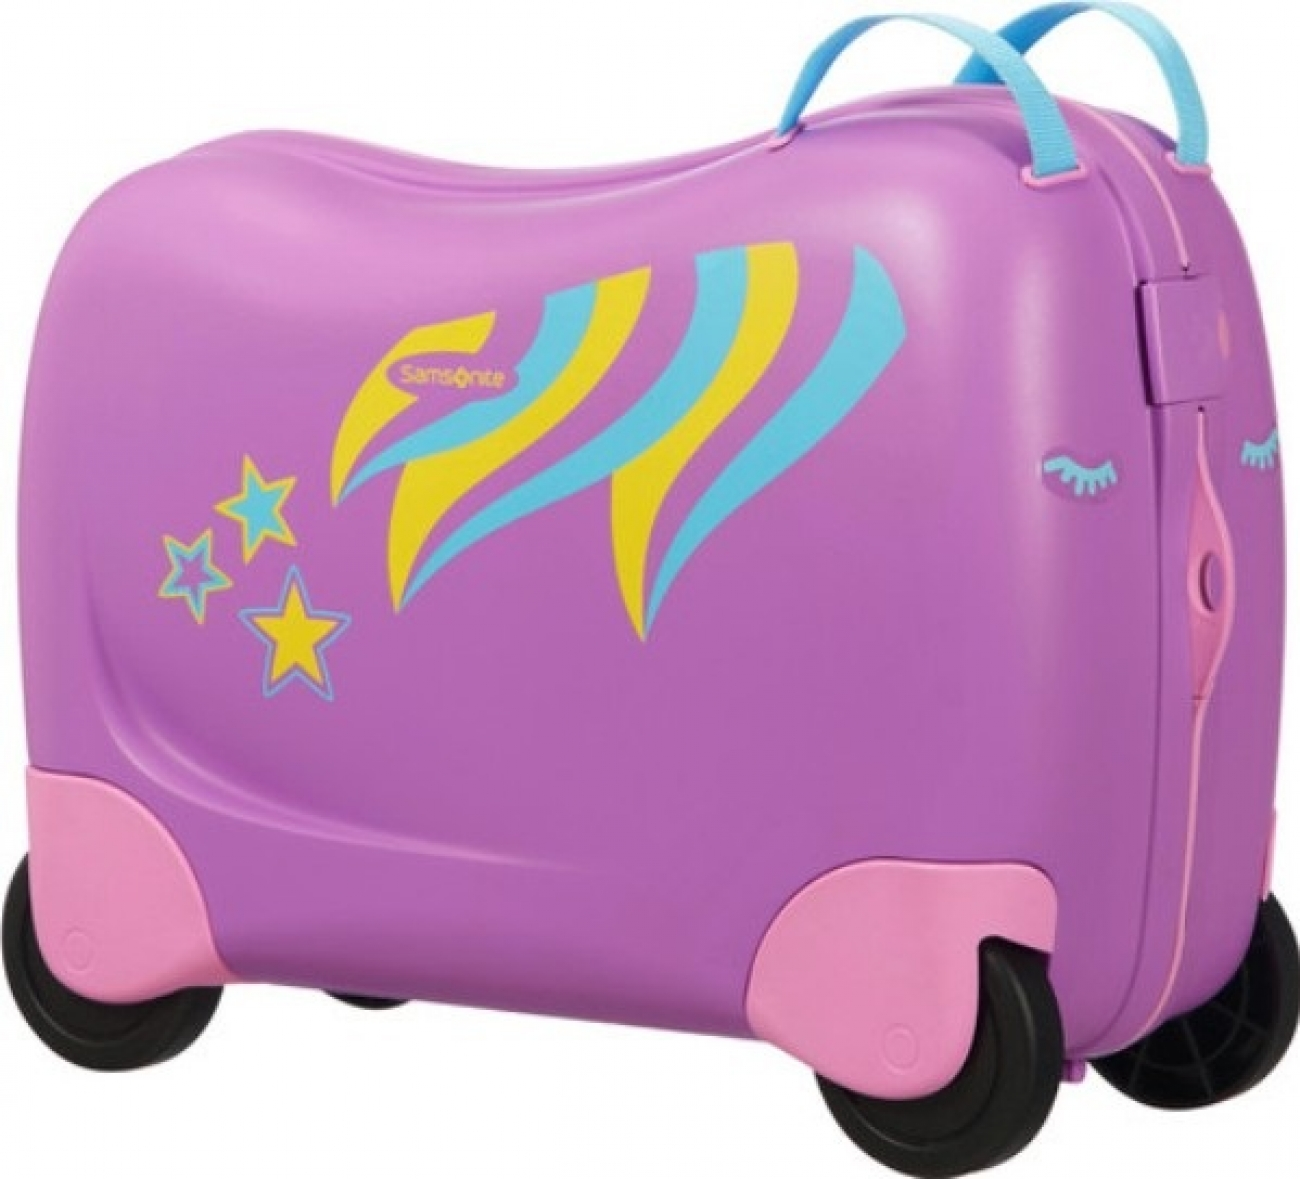 Samsonite Dream Rider Ride-on Suitcase - Pony